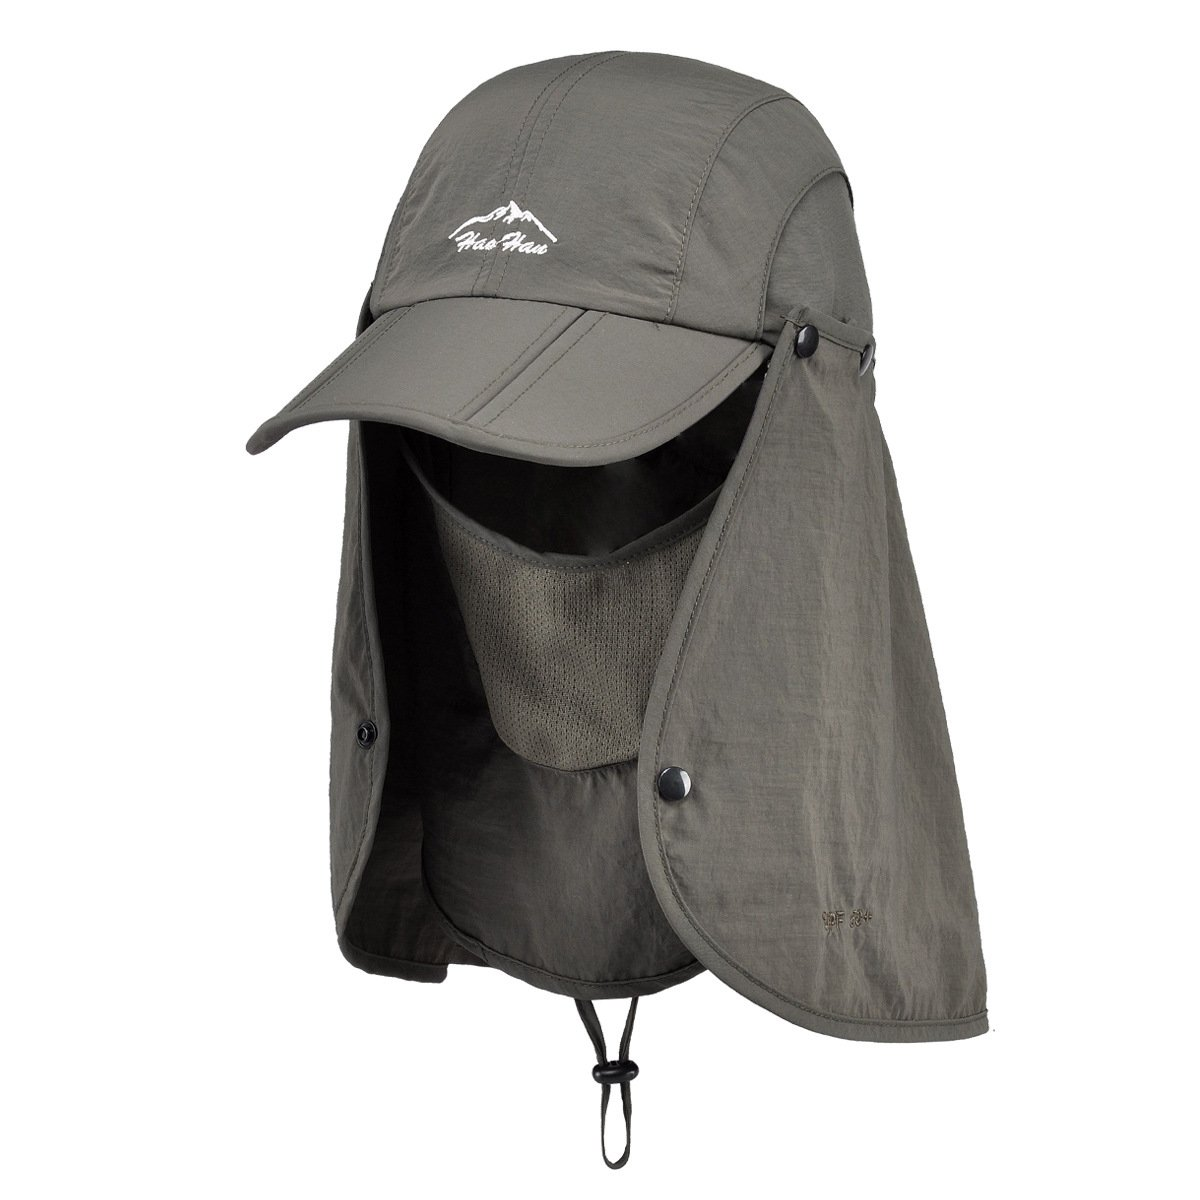 Belsen UPF 50+ Summer Hat Neck Protection Flap Cap (Army Green) by Belsen